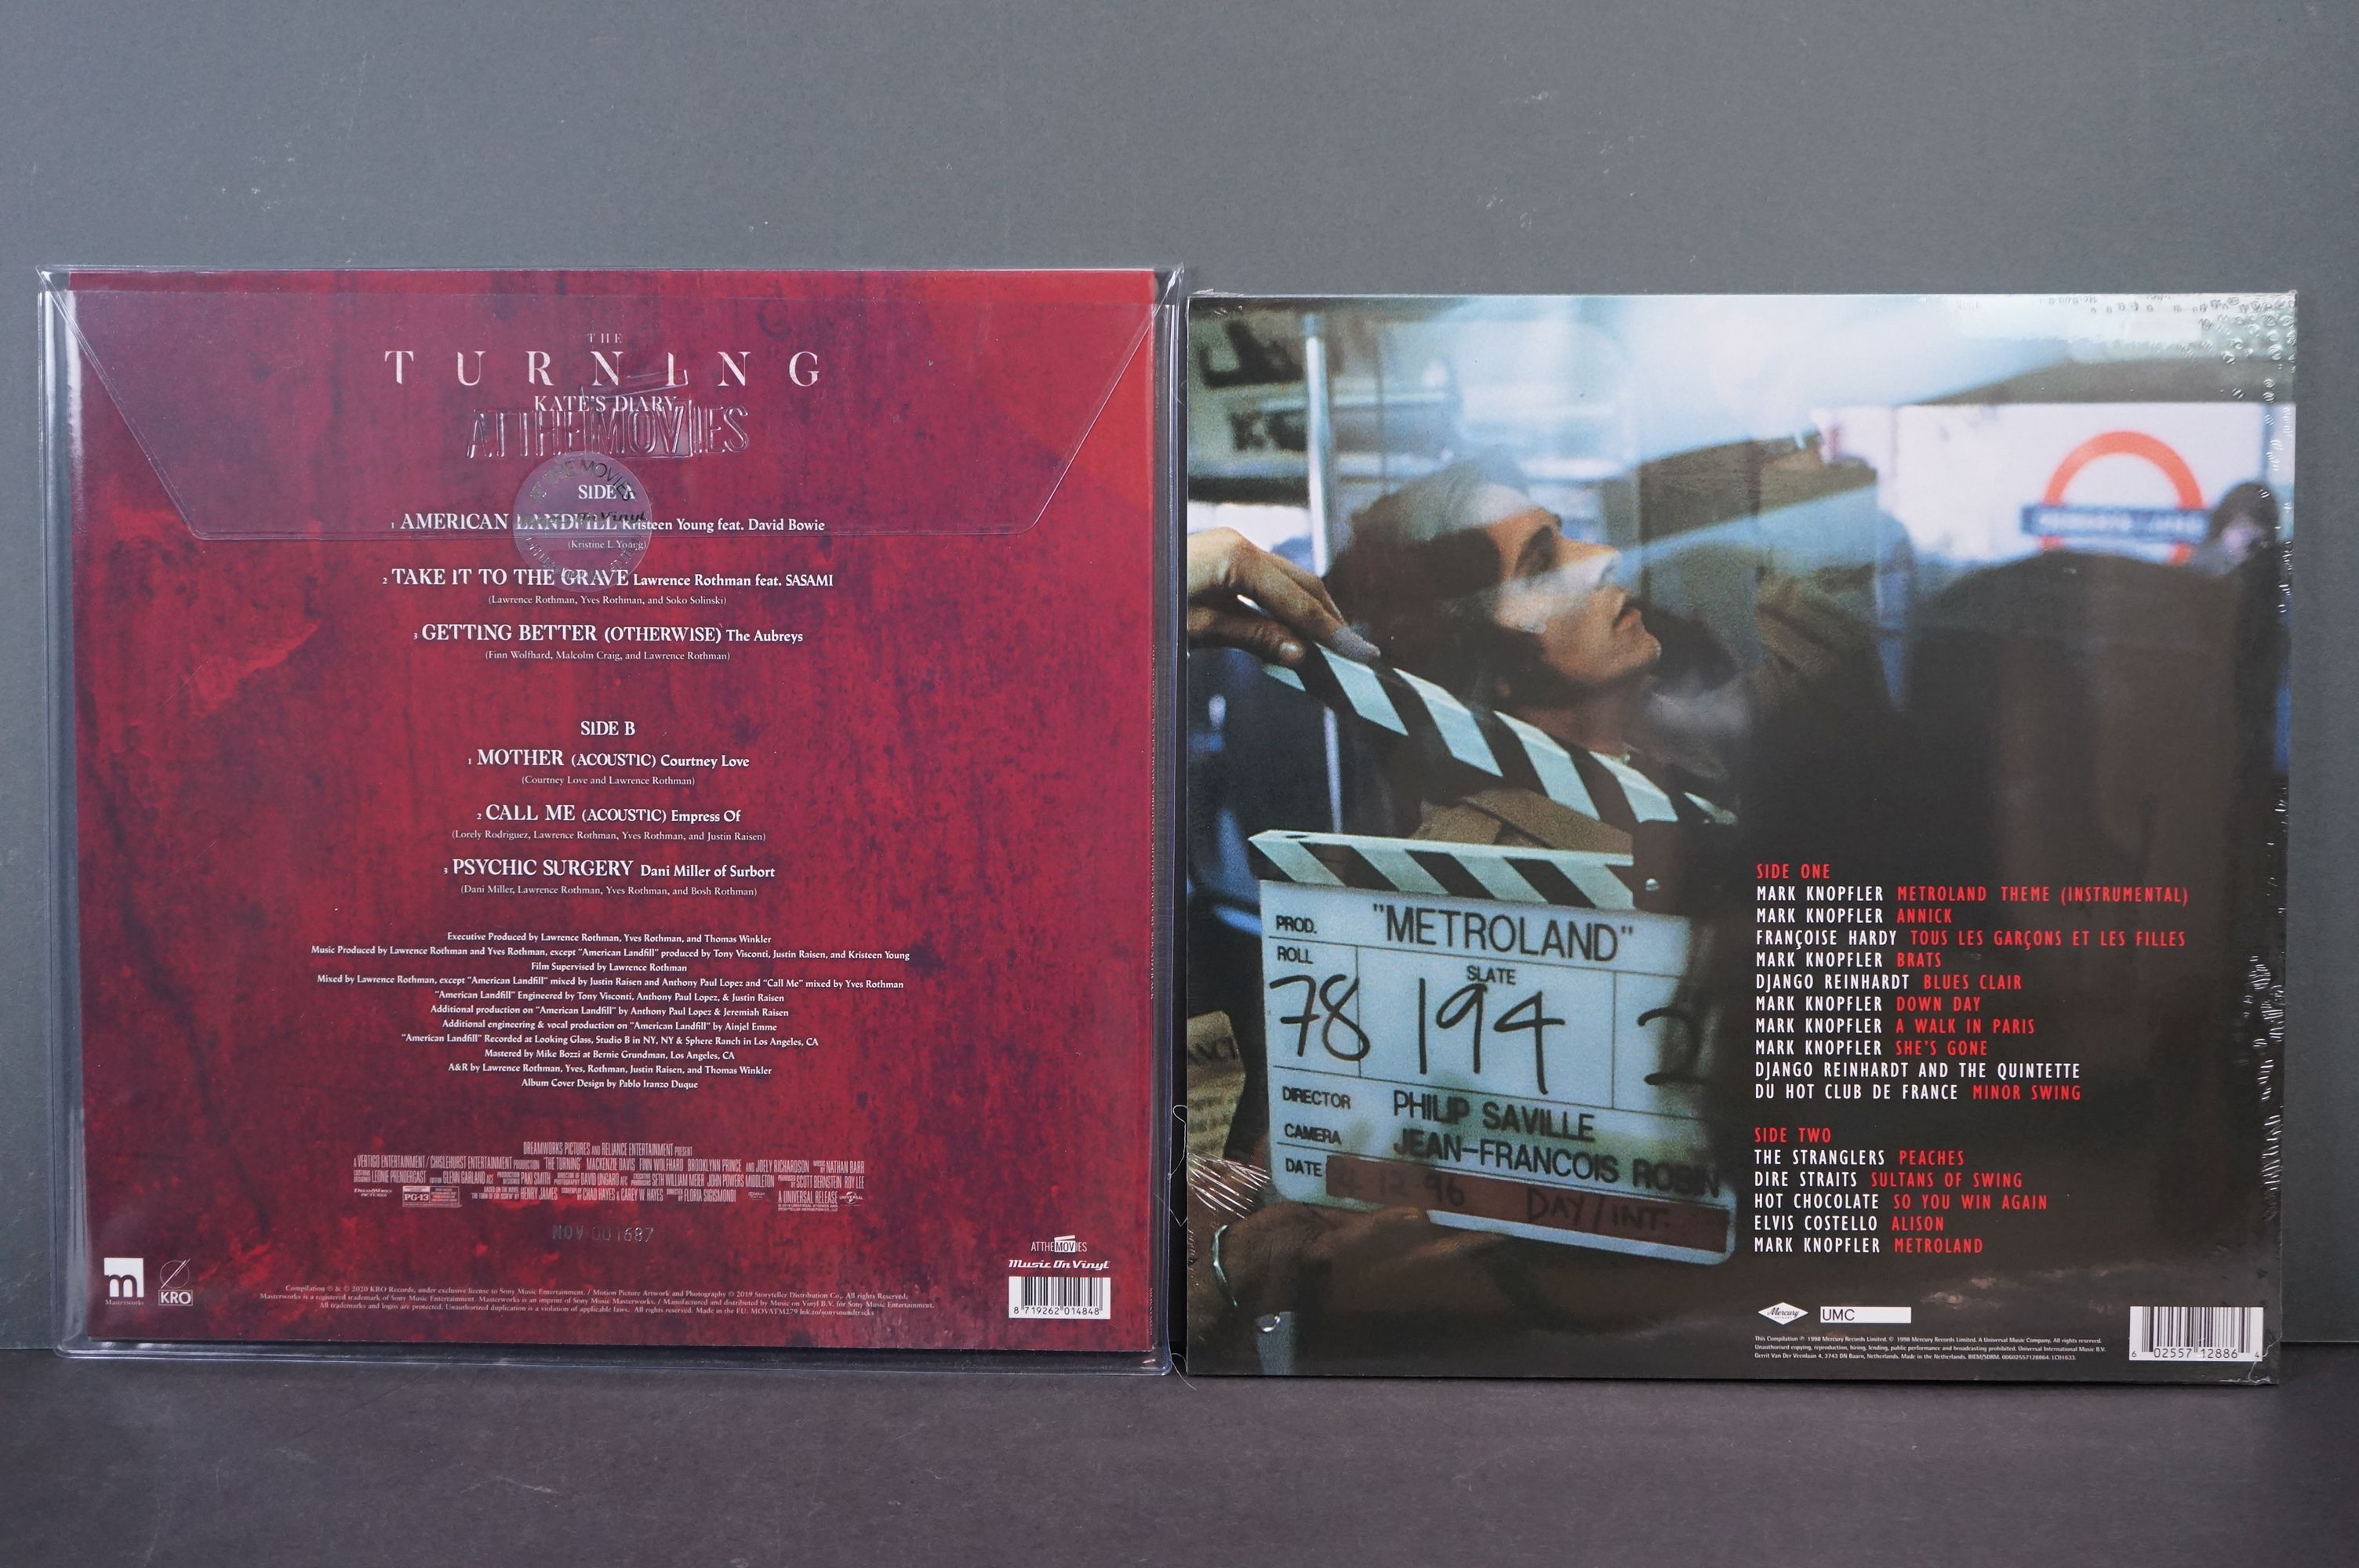 Vinyl - The Turning Kate's Diary ltd edn coloured vinyl LP At The Movies MOVATM279 featuring Davod - Image 2 of 2